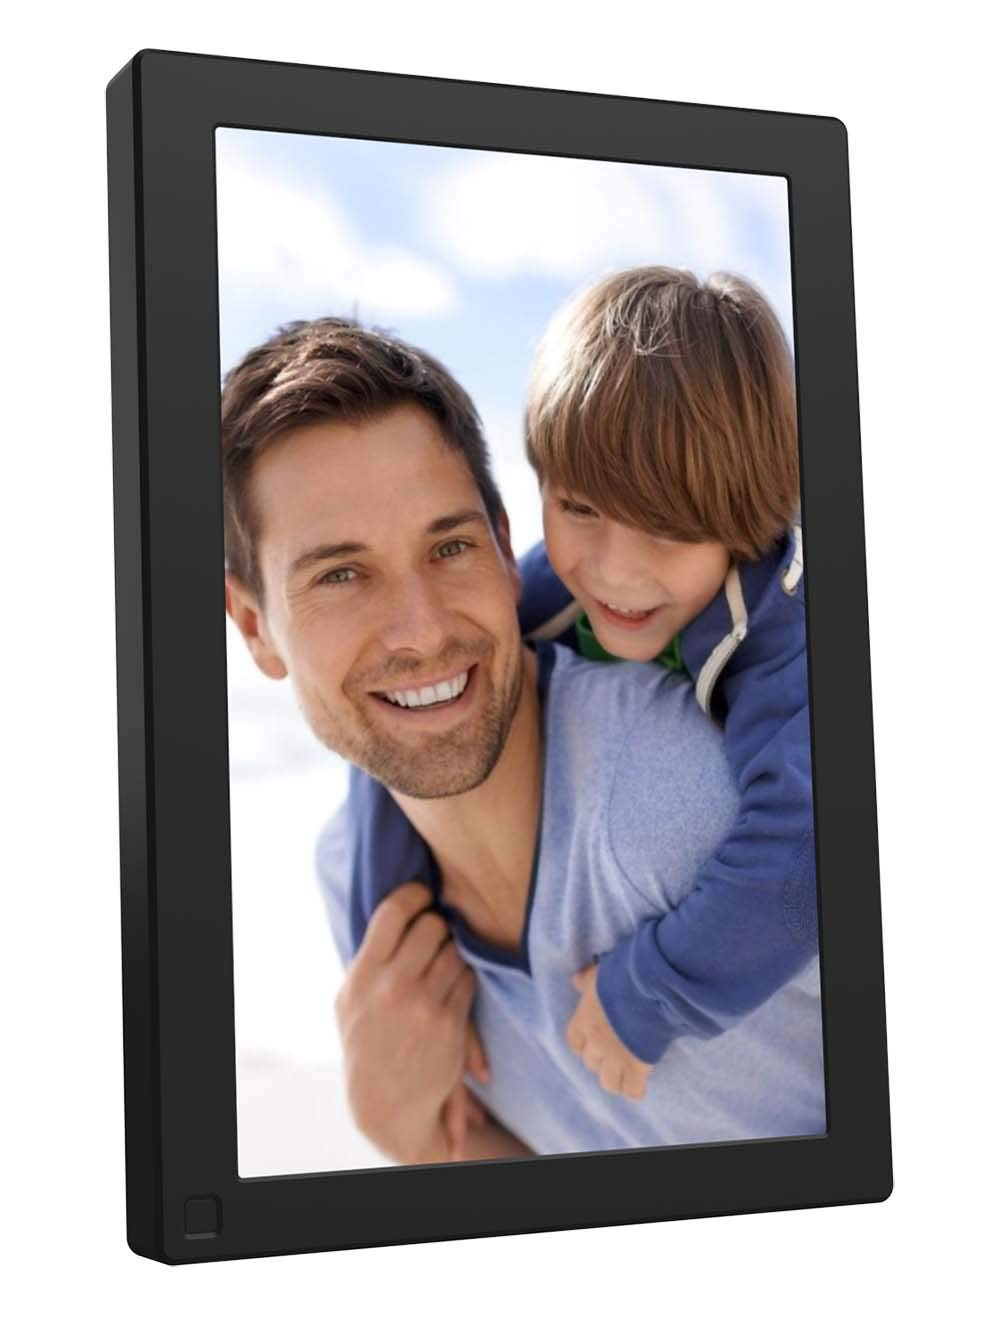 BSIMB Digital Picture Frame 10.1 Inch WiFi 16GB Digital Photo Frame 1280x800 IPS Touch Screen Auto Rotate Motion Sensor Add Photos/Videos from iPhone & Android App/Twitter/Facebook/Email W10 by Bsimb